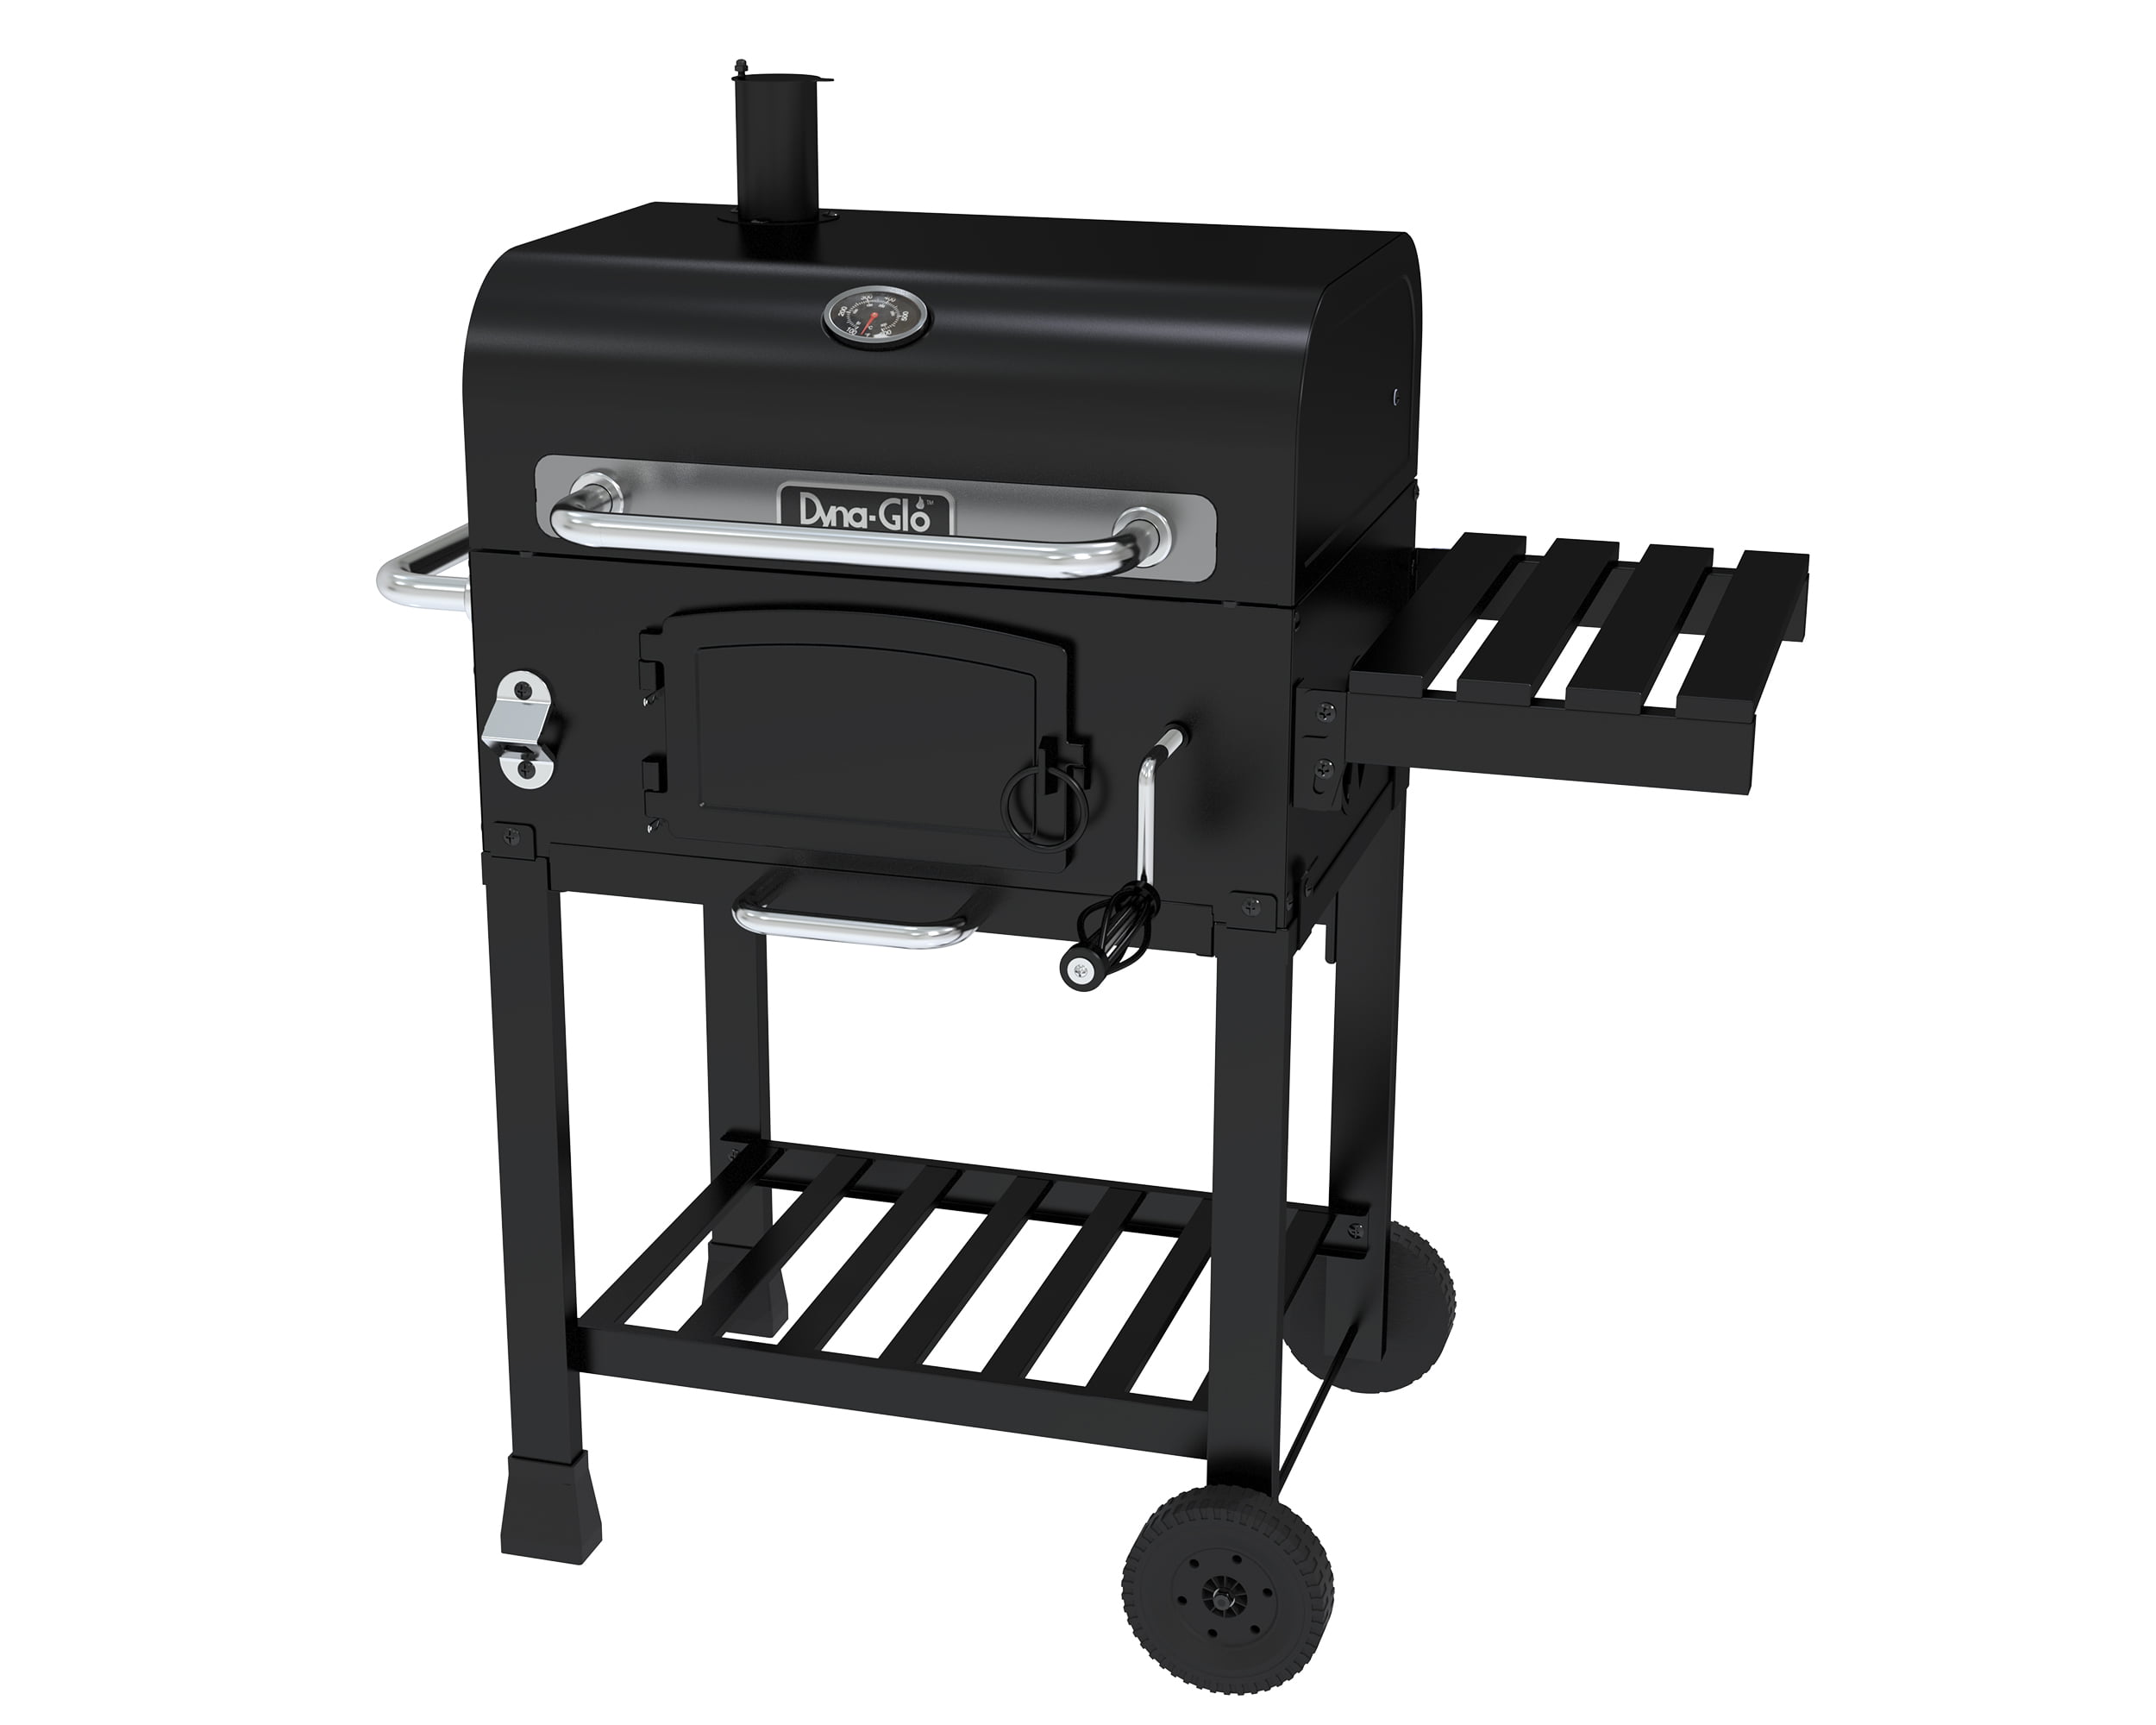 Dyna-Glo DGD381BNC-D Compact Charcoal Grill by GHP Group, Inc.